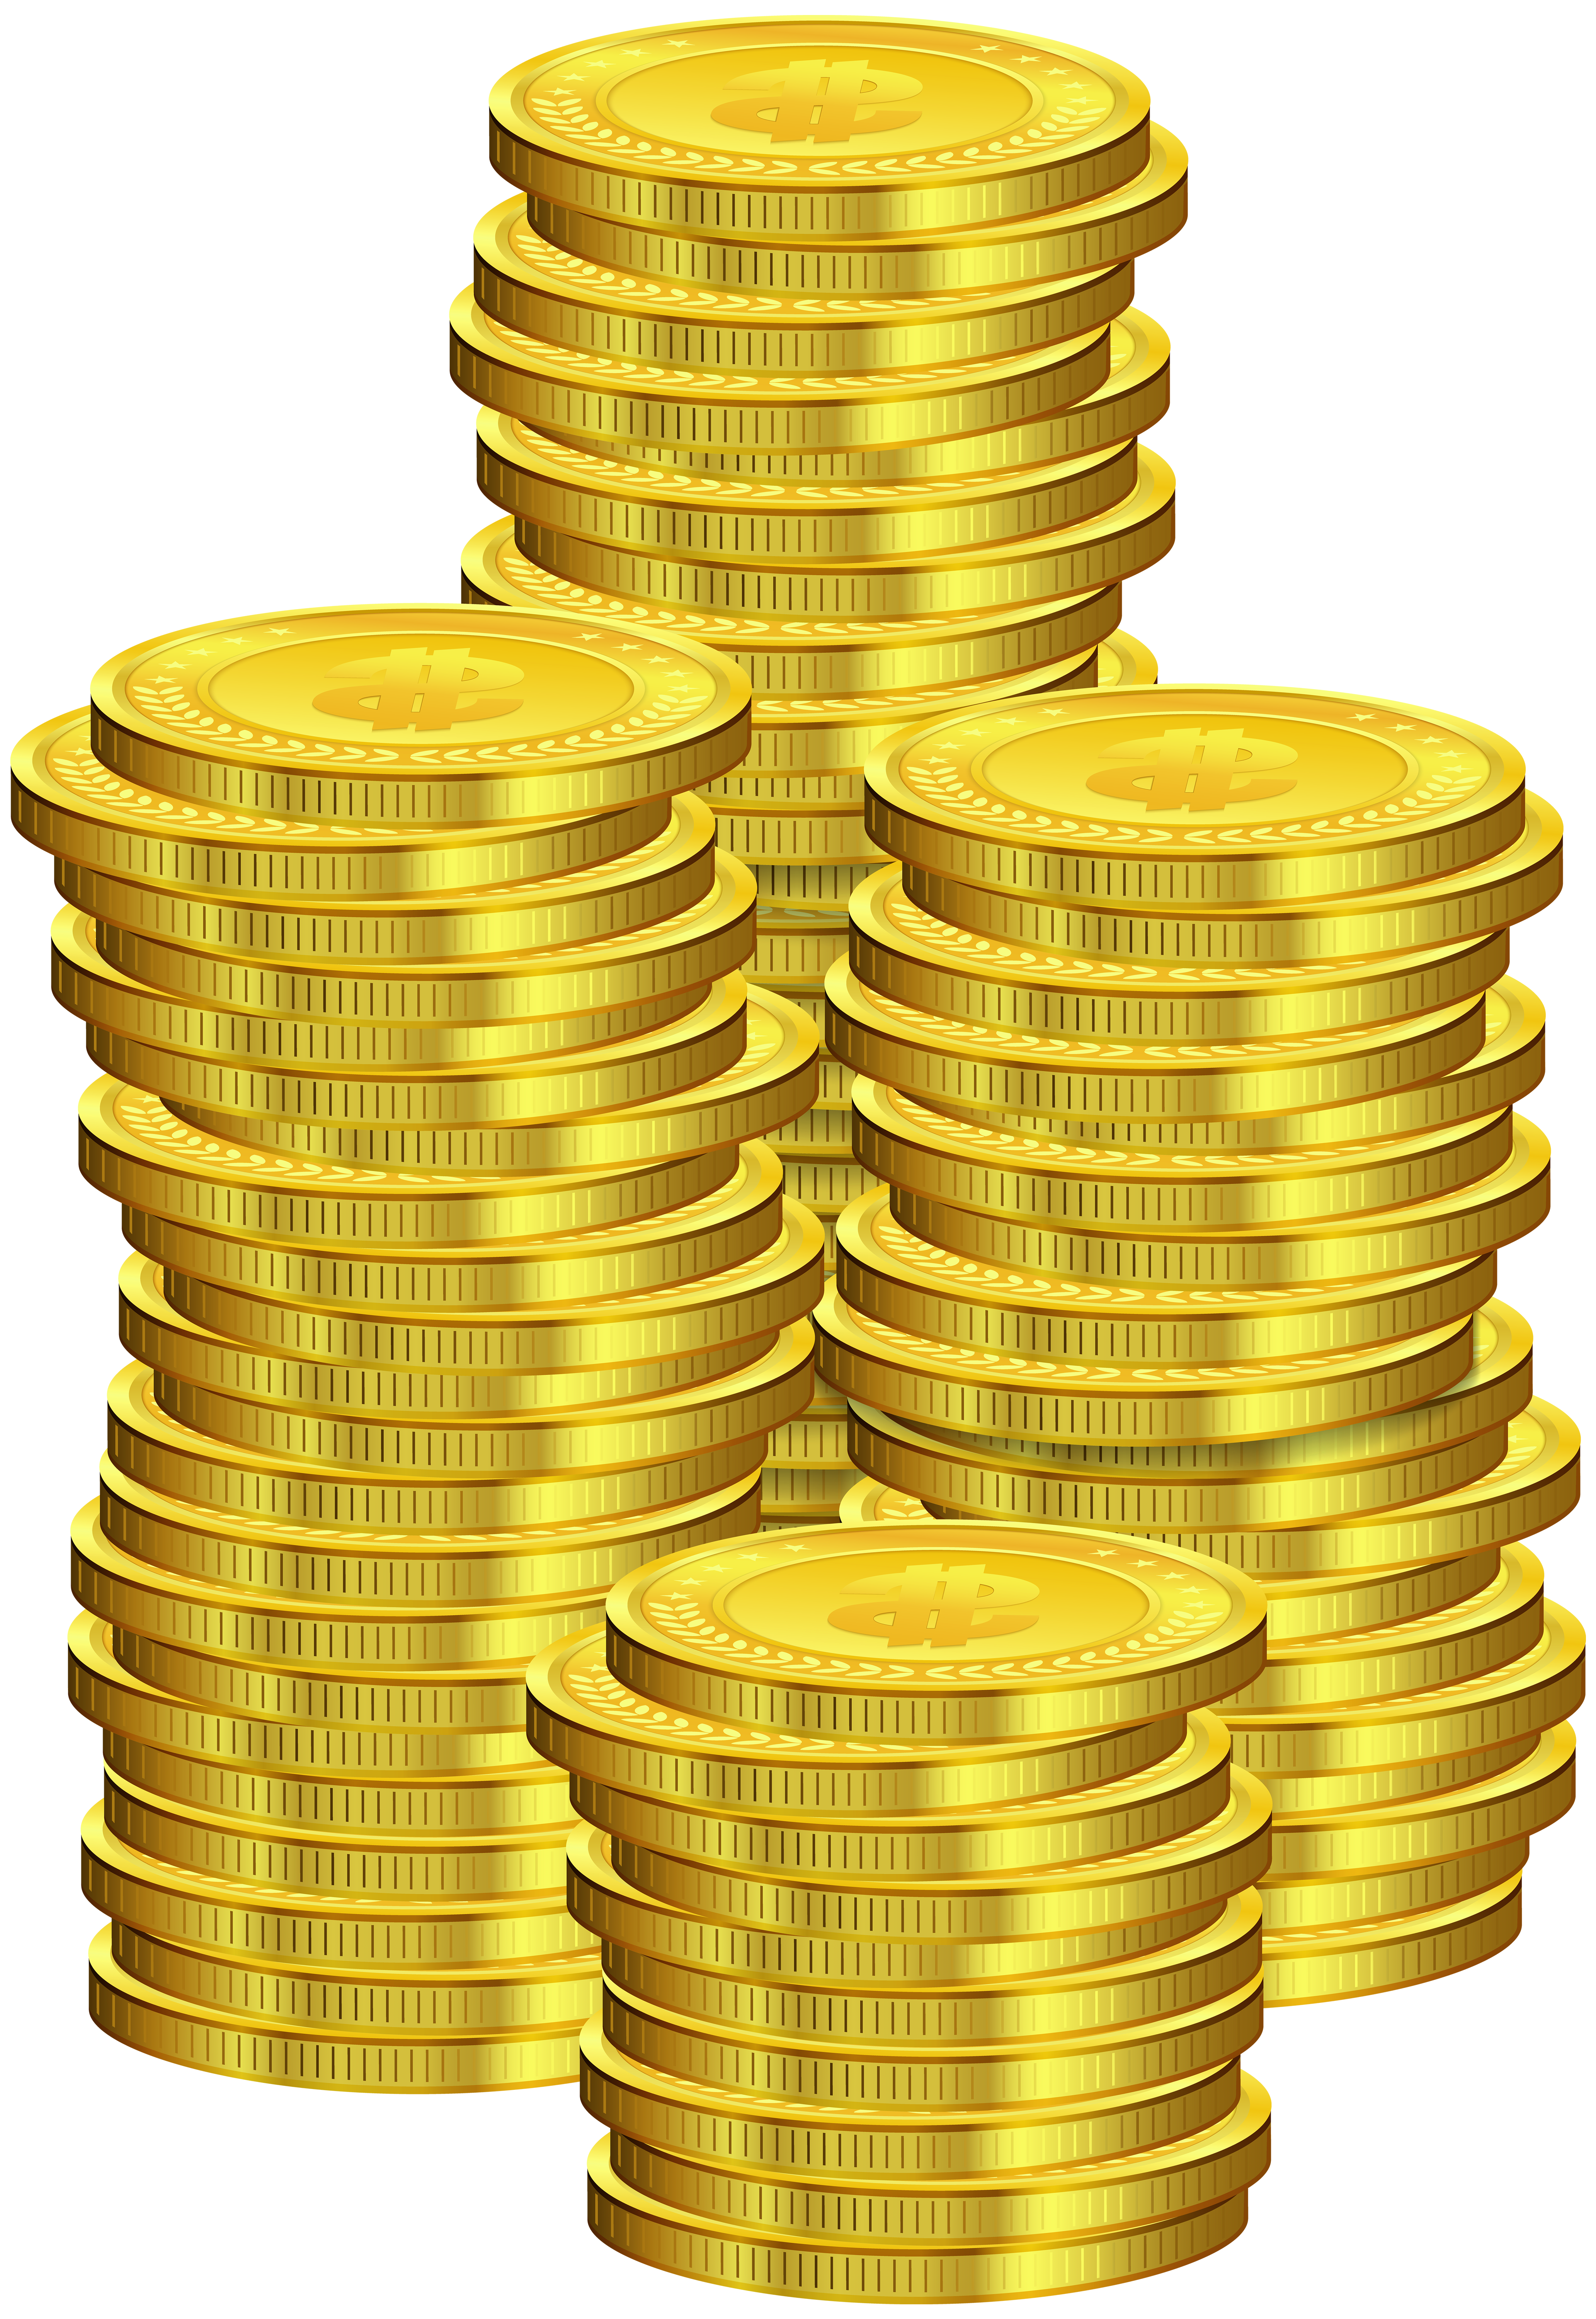 Coin clipart png. Coins clip art best